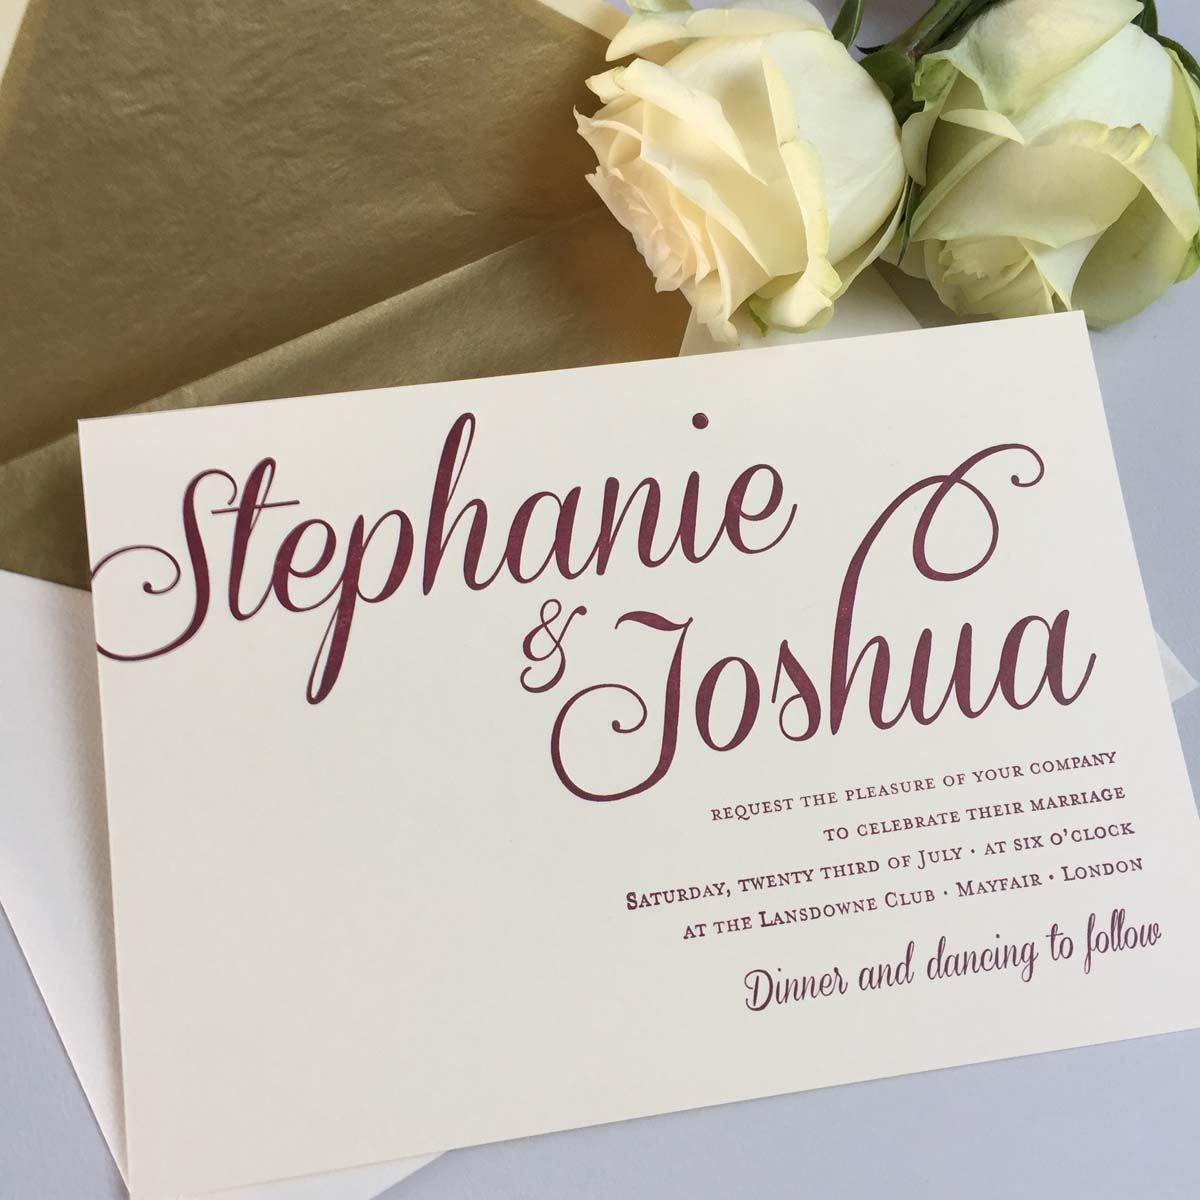 Stephanie red wedding invitations